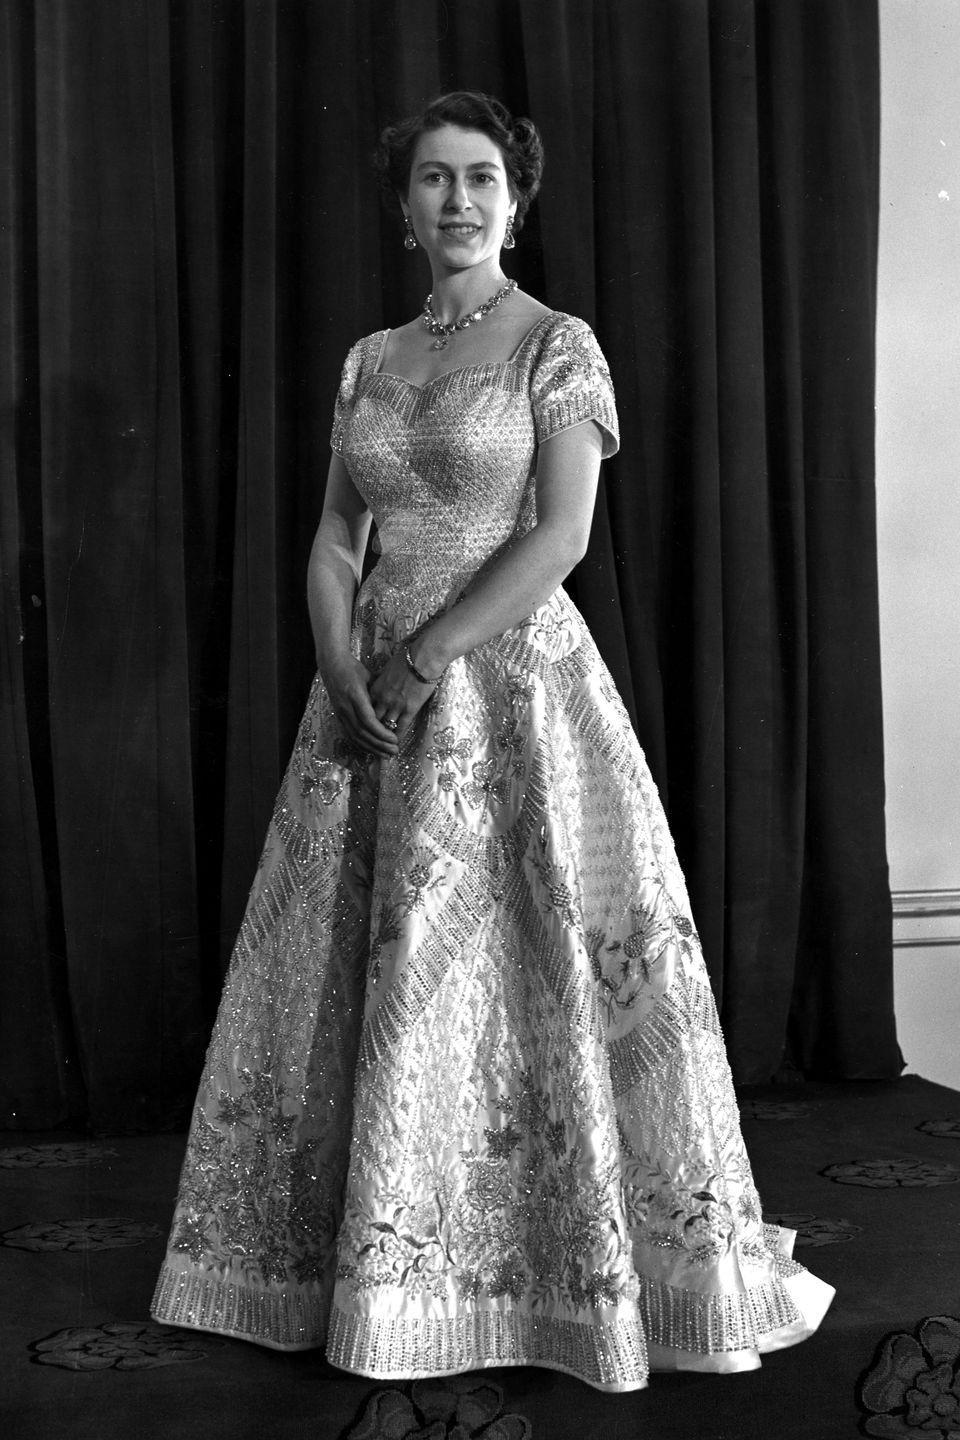 <p>In an embellished, cap-sleeved Norman Hartnell gown for her coronation ceremony. </p>